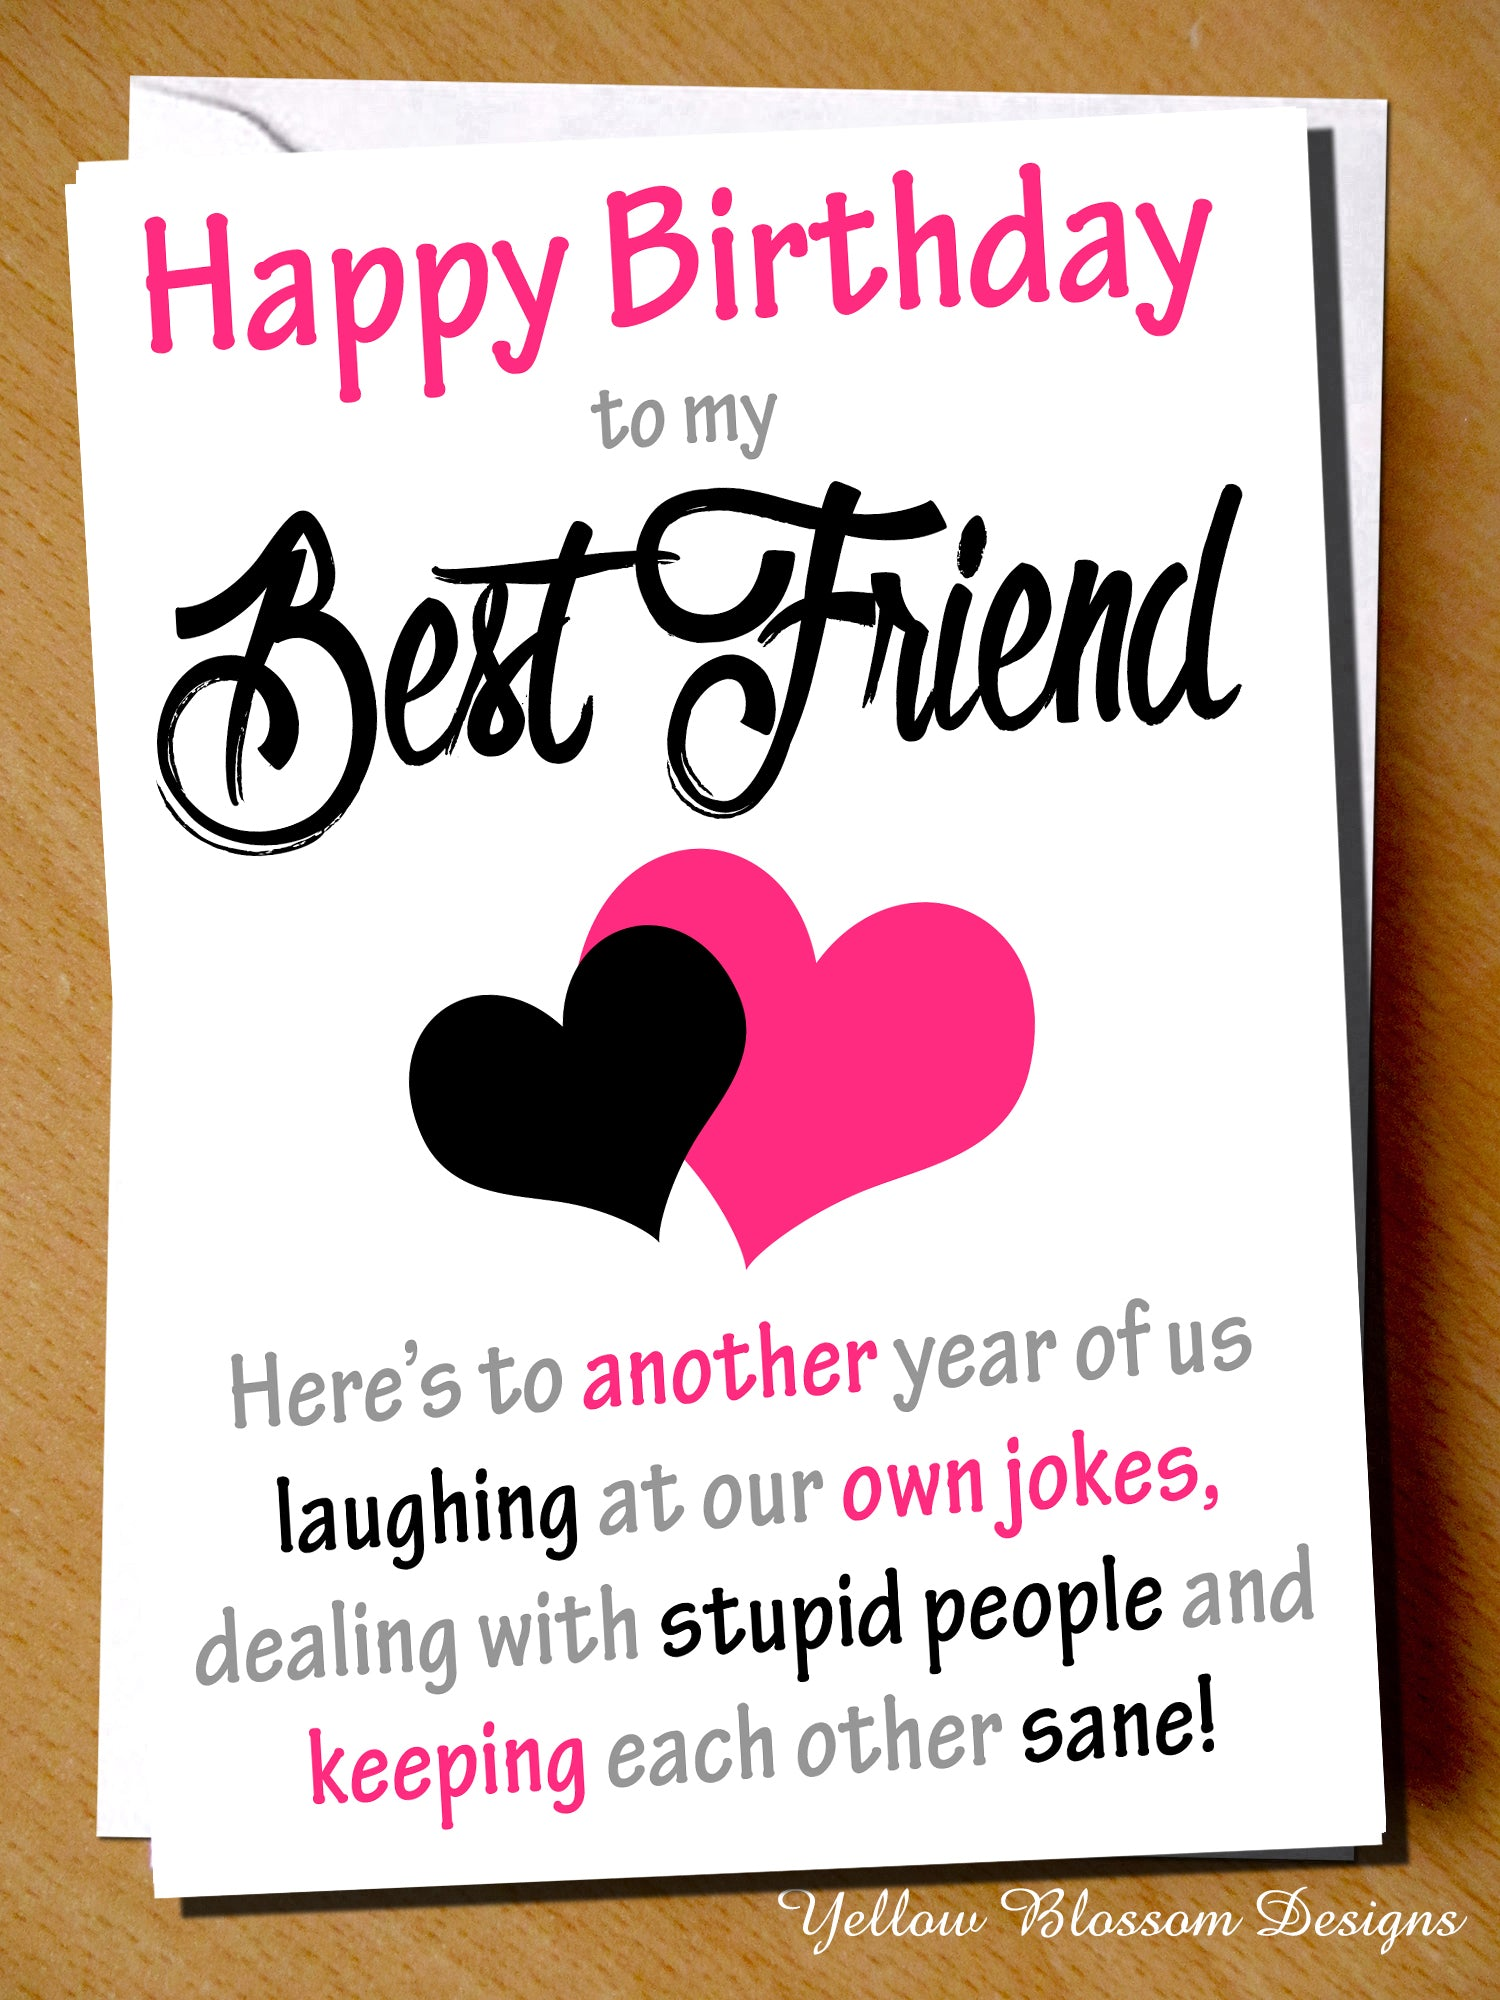 Happy Birthday Card To My Best Friend Own Jokes Stupid People Sane